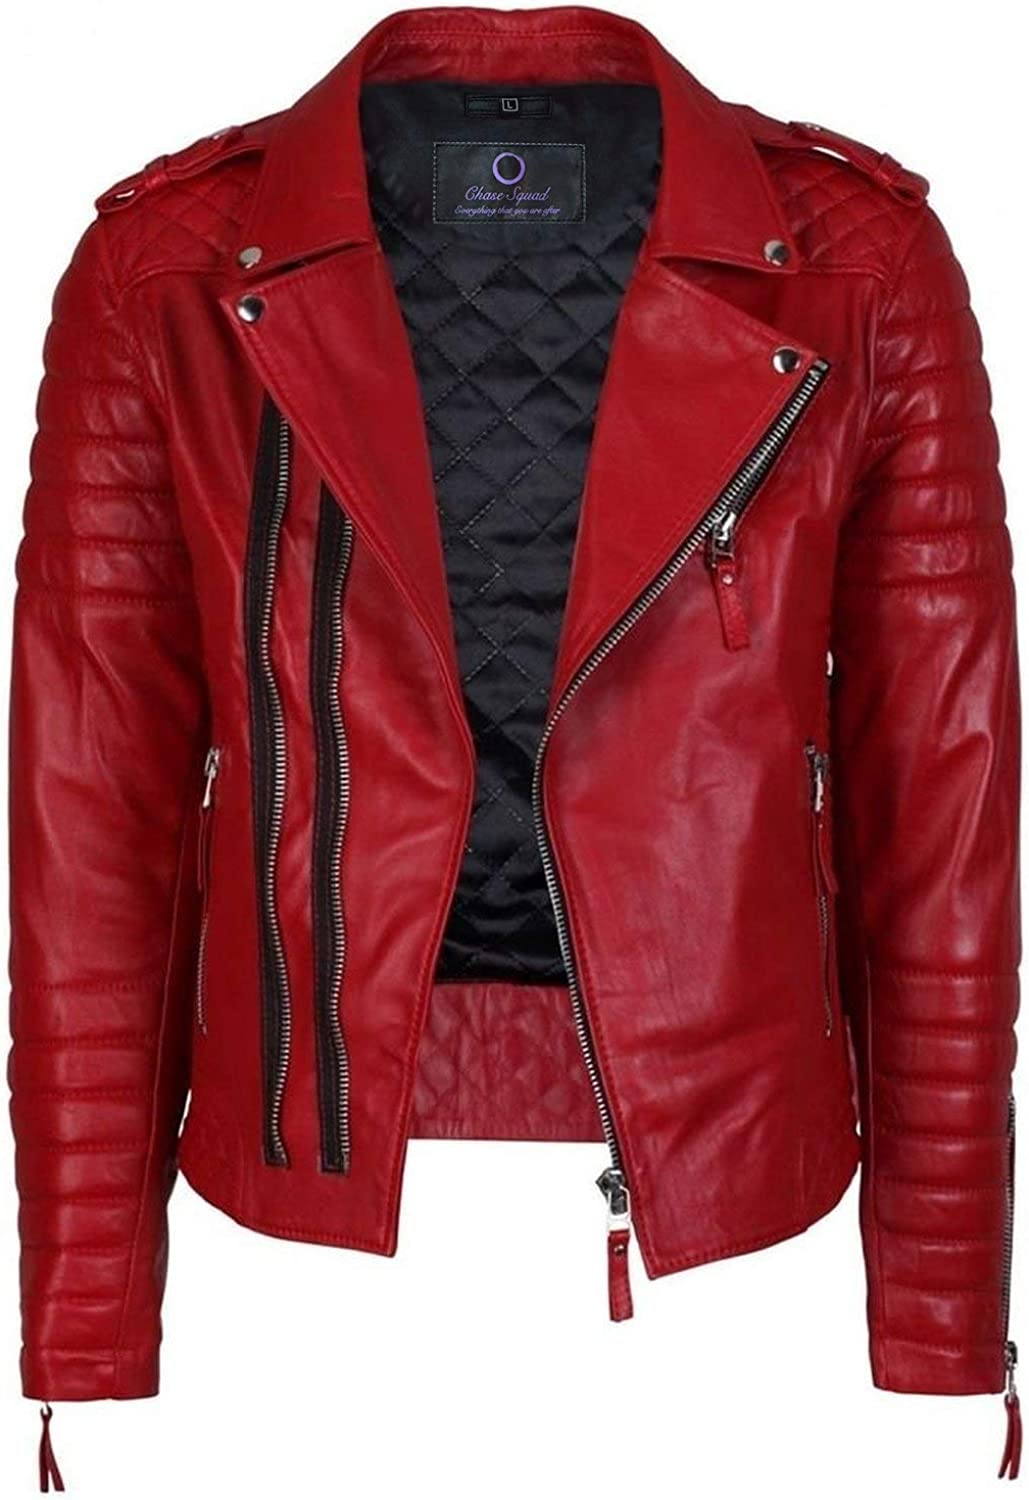 Chase Squad Bloody Red Notch Collar Faux Leather Jacket Women  Quilted Faux Leather Jacket Girls